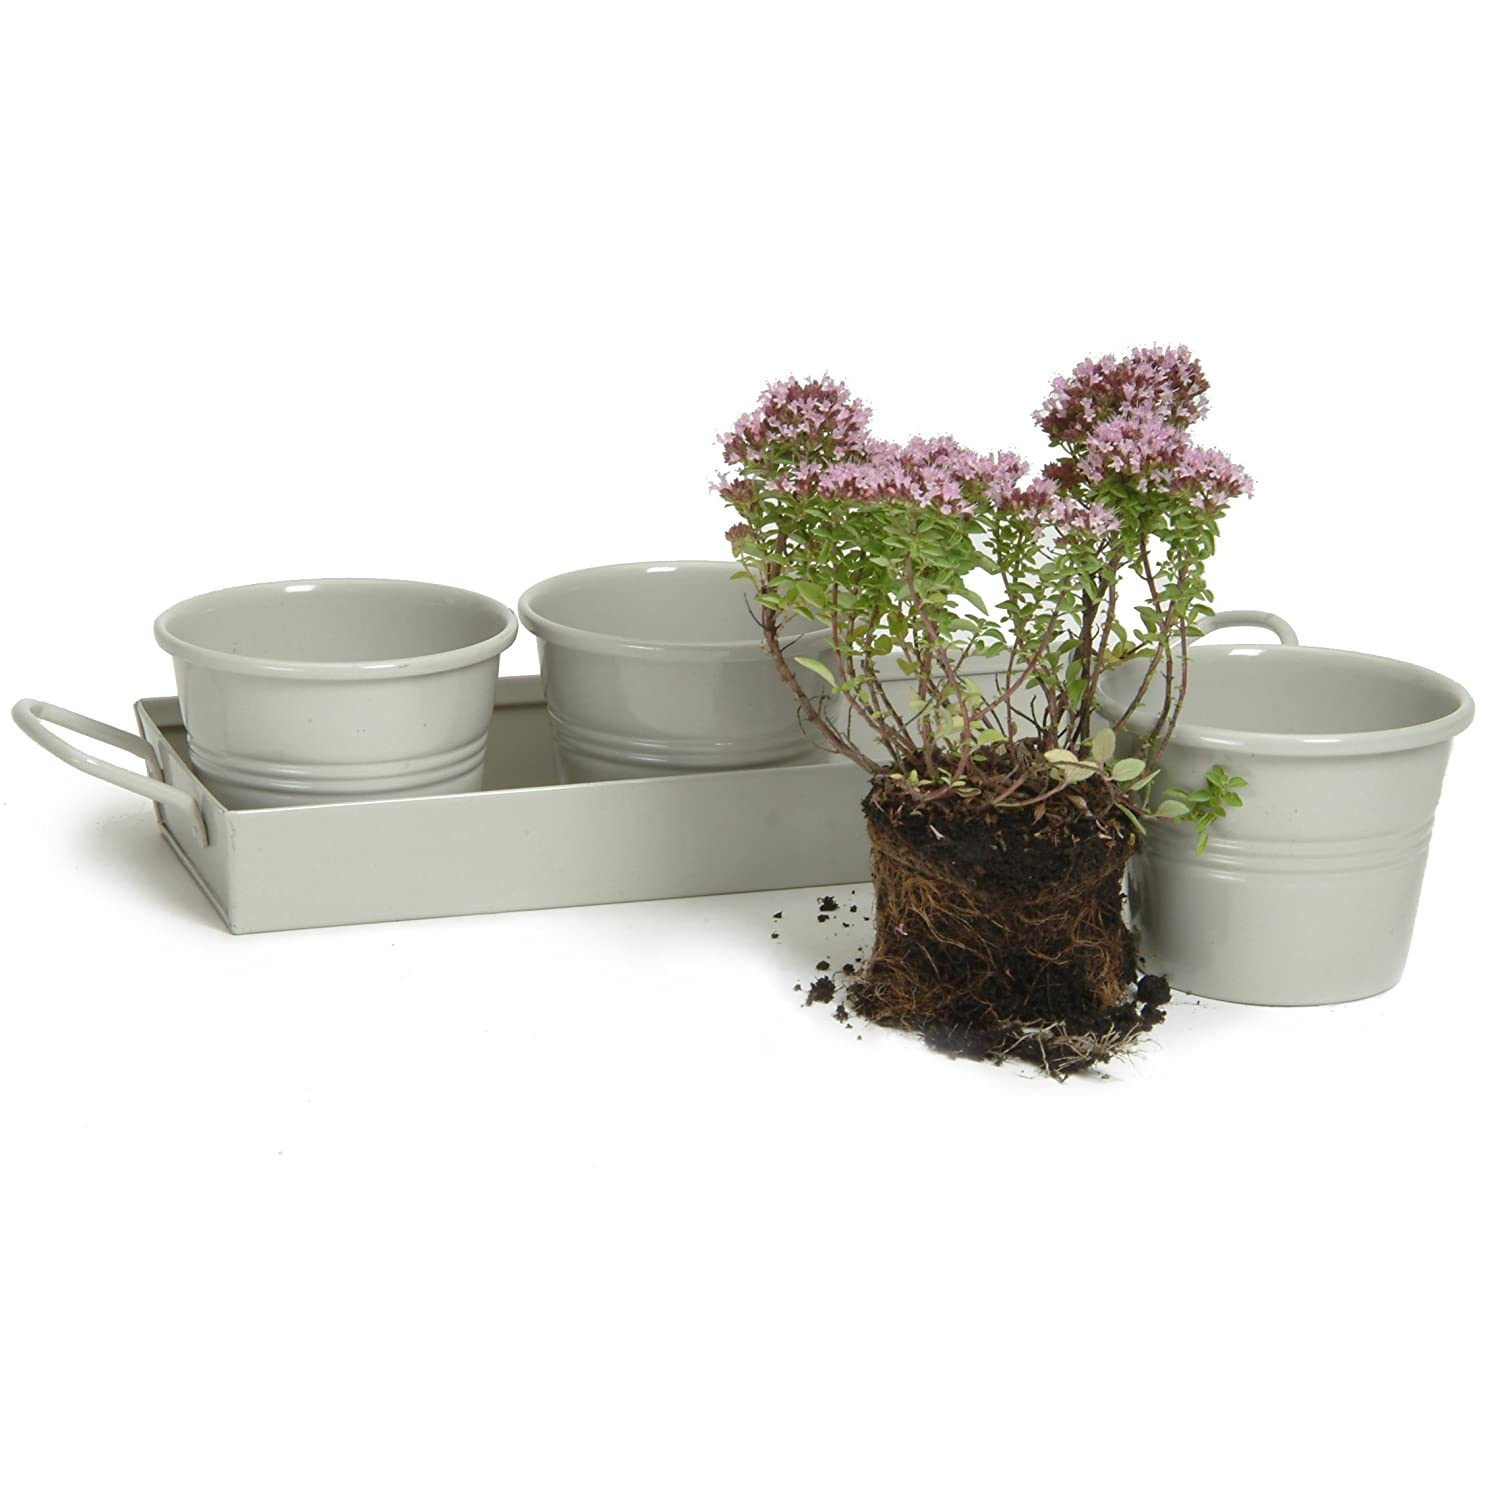 Kitchen Herb Pots Wooden Planter Window Sill Garden Plant